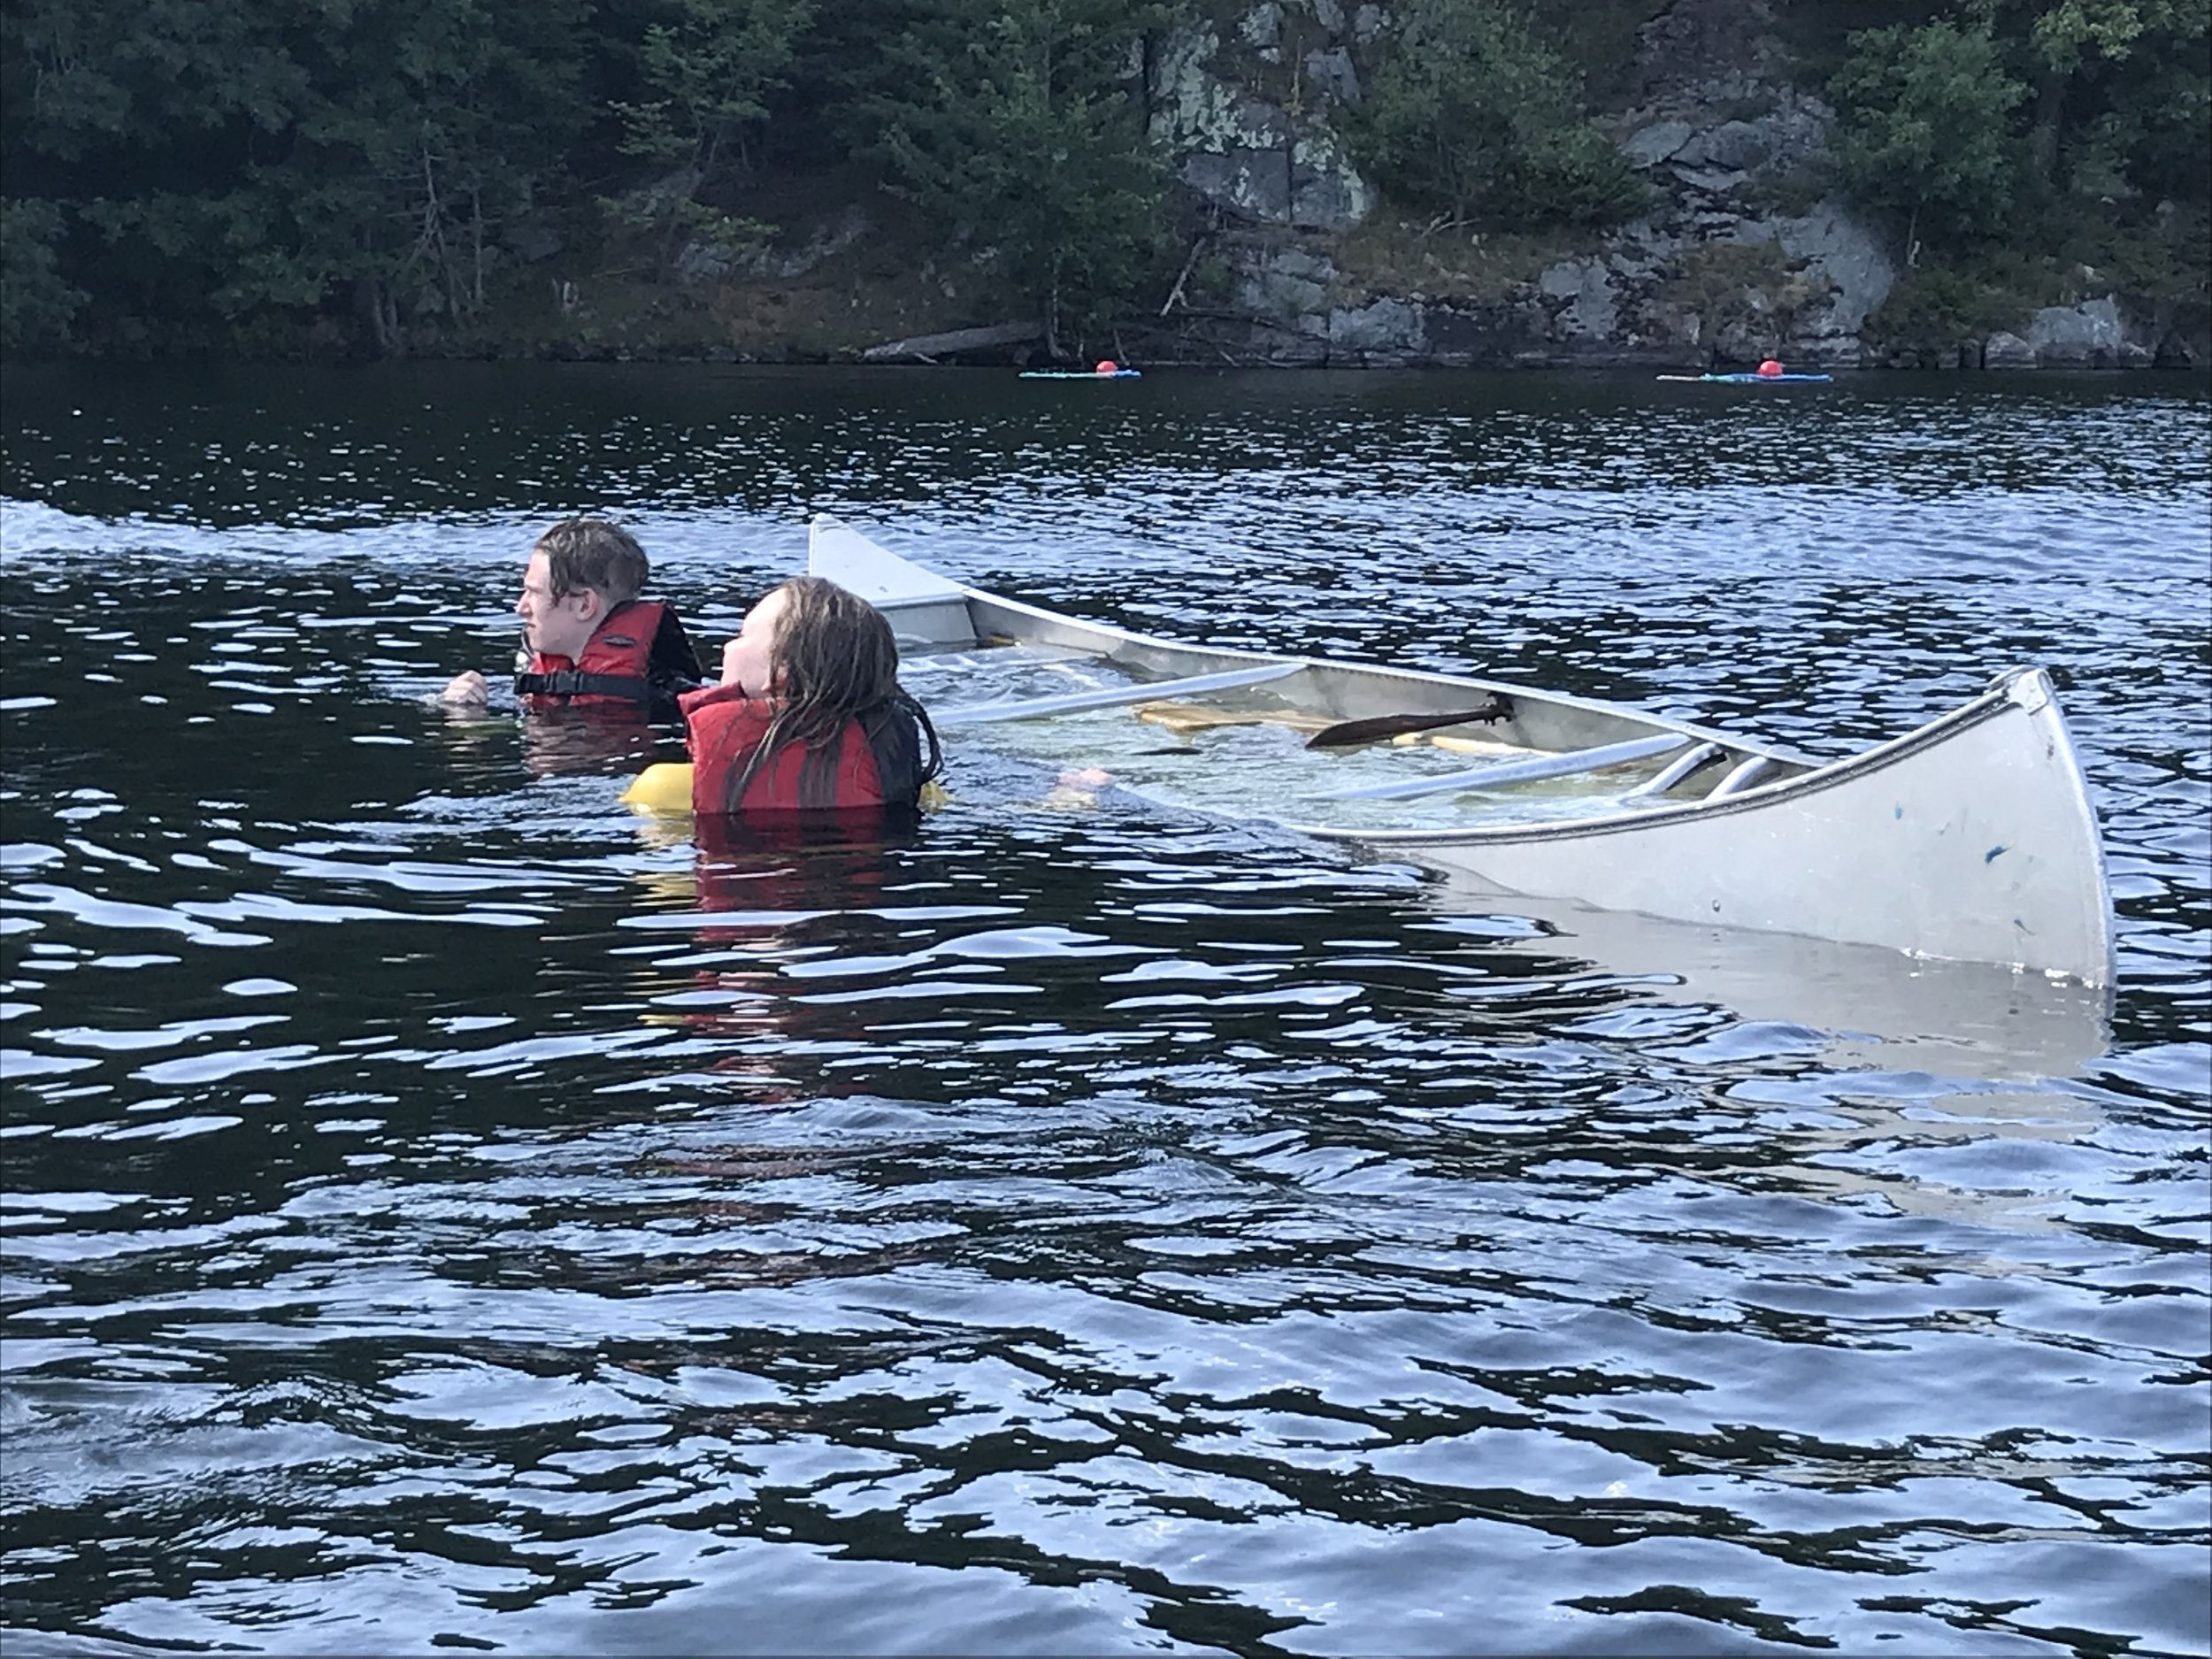 learning self rescue and how to empty a canoe while in the middle of the lake. Tons of fun! part of our safe paddling certificate.